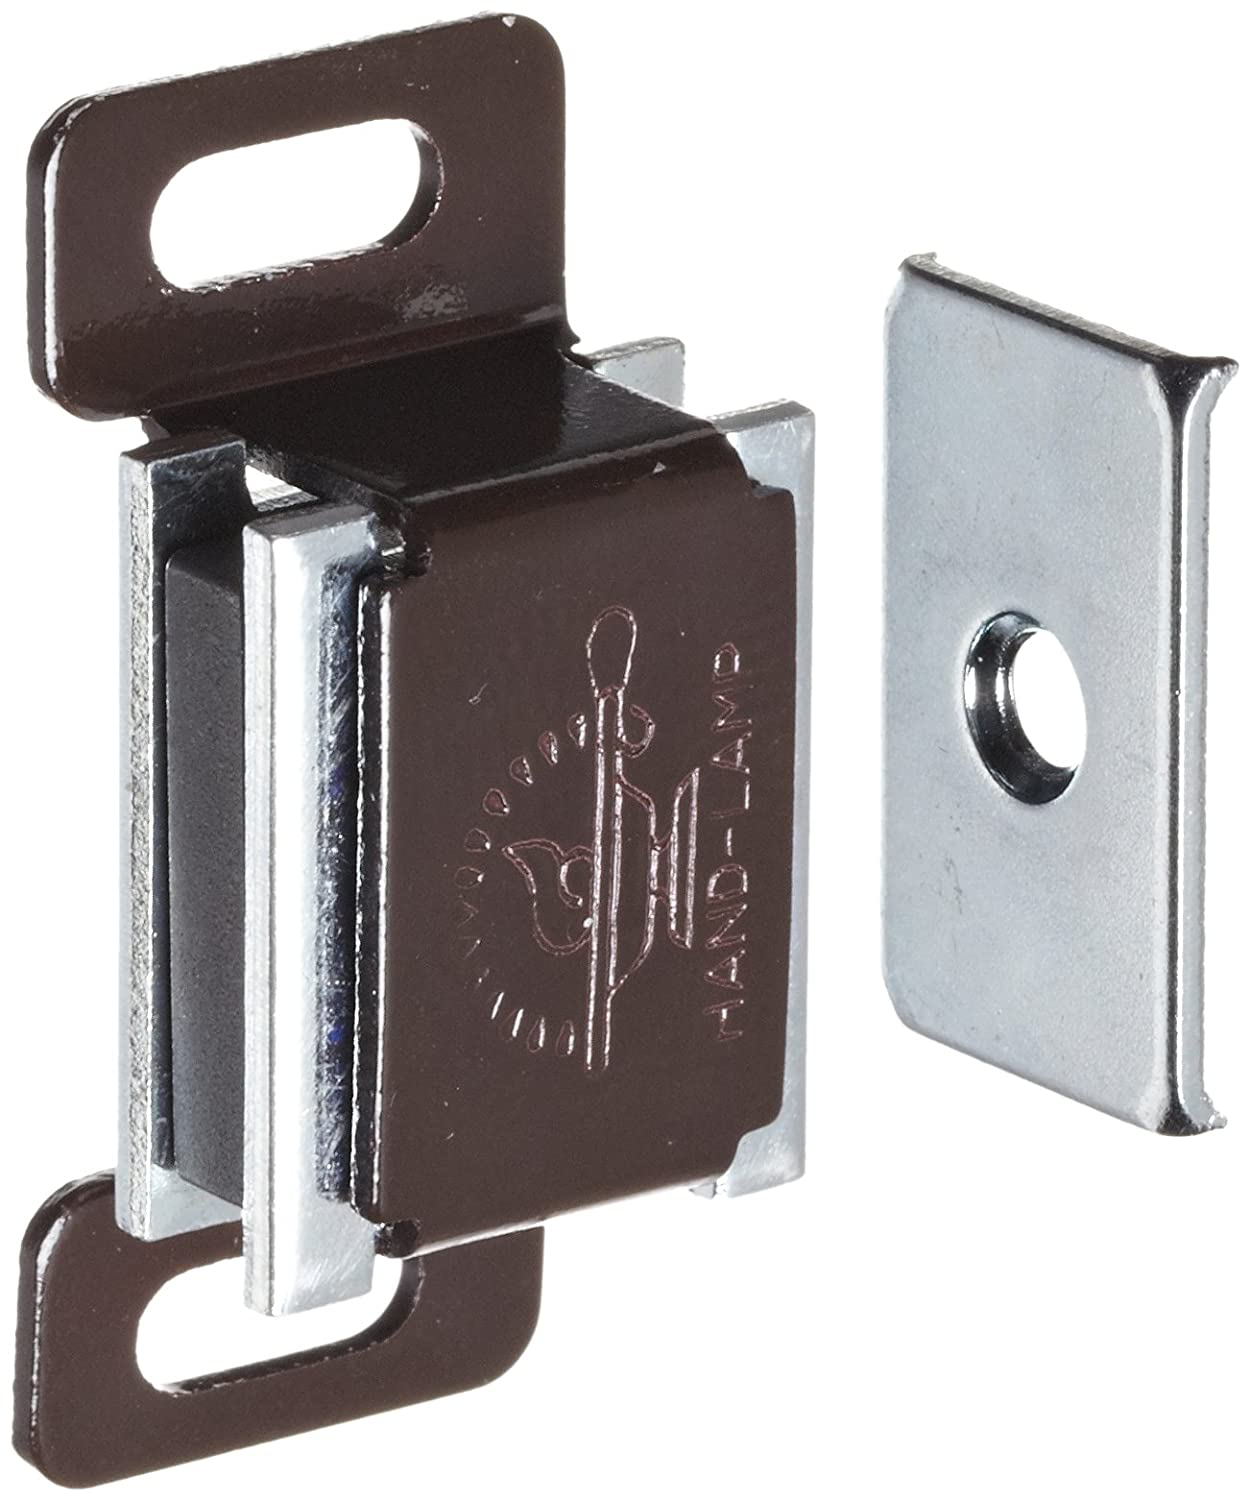 1-13//16 Length 19//32 Height 3.3lbs Pull Power Pack of 5 53//64 Width Aluminum Surface Mount Magnetic Catch